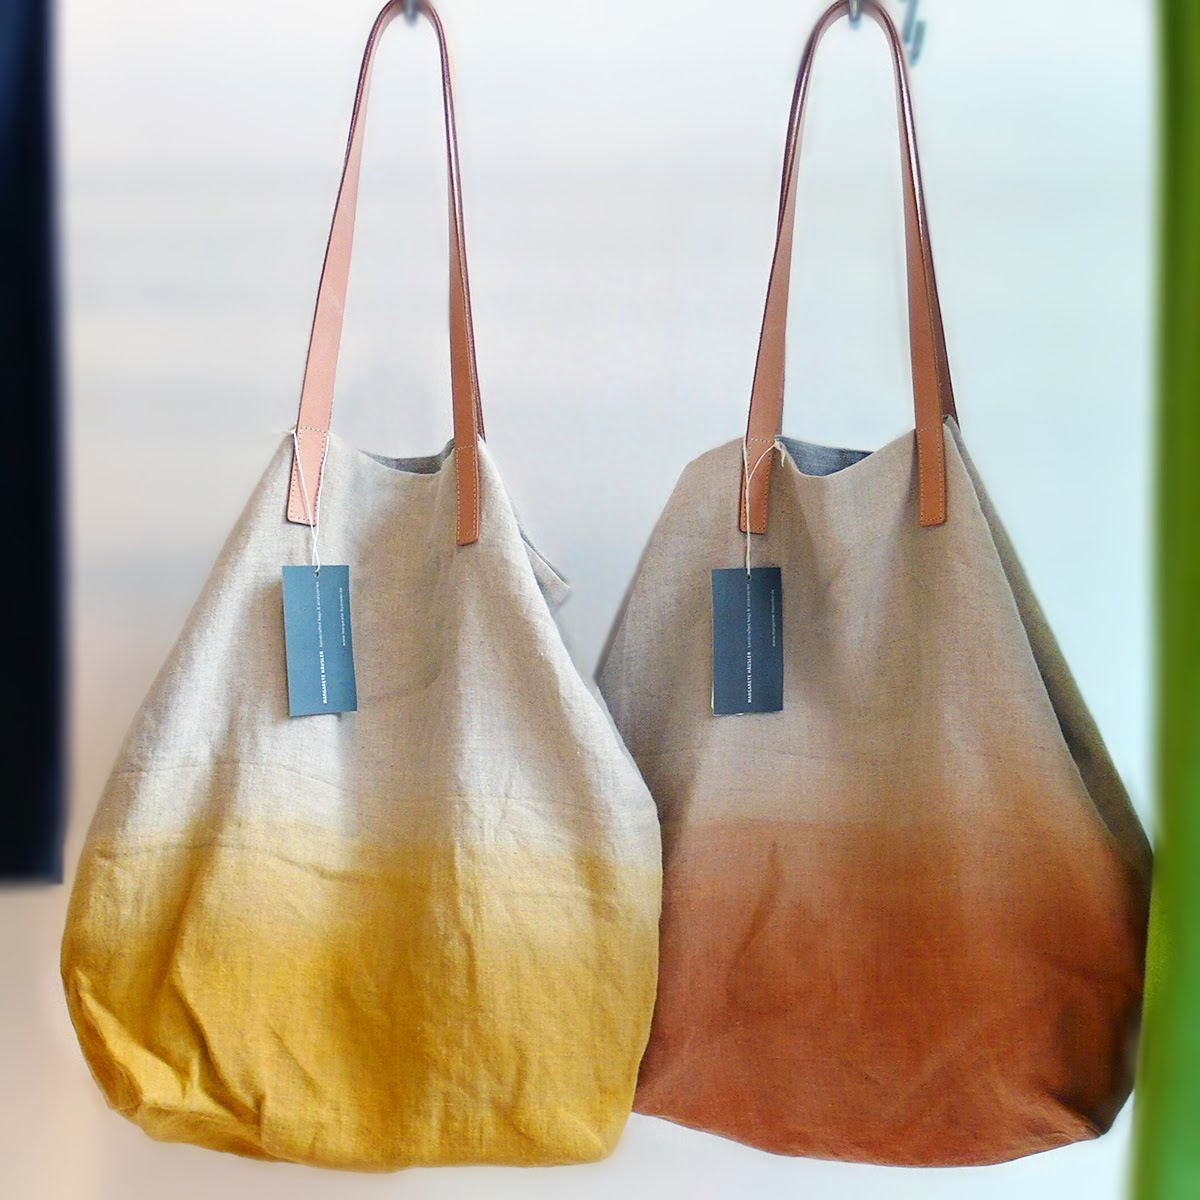 Earth Friendly! MARGARETE HÄUSLER Ochre & Tangerine Tote bags made from linen with color gradient.